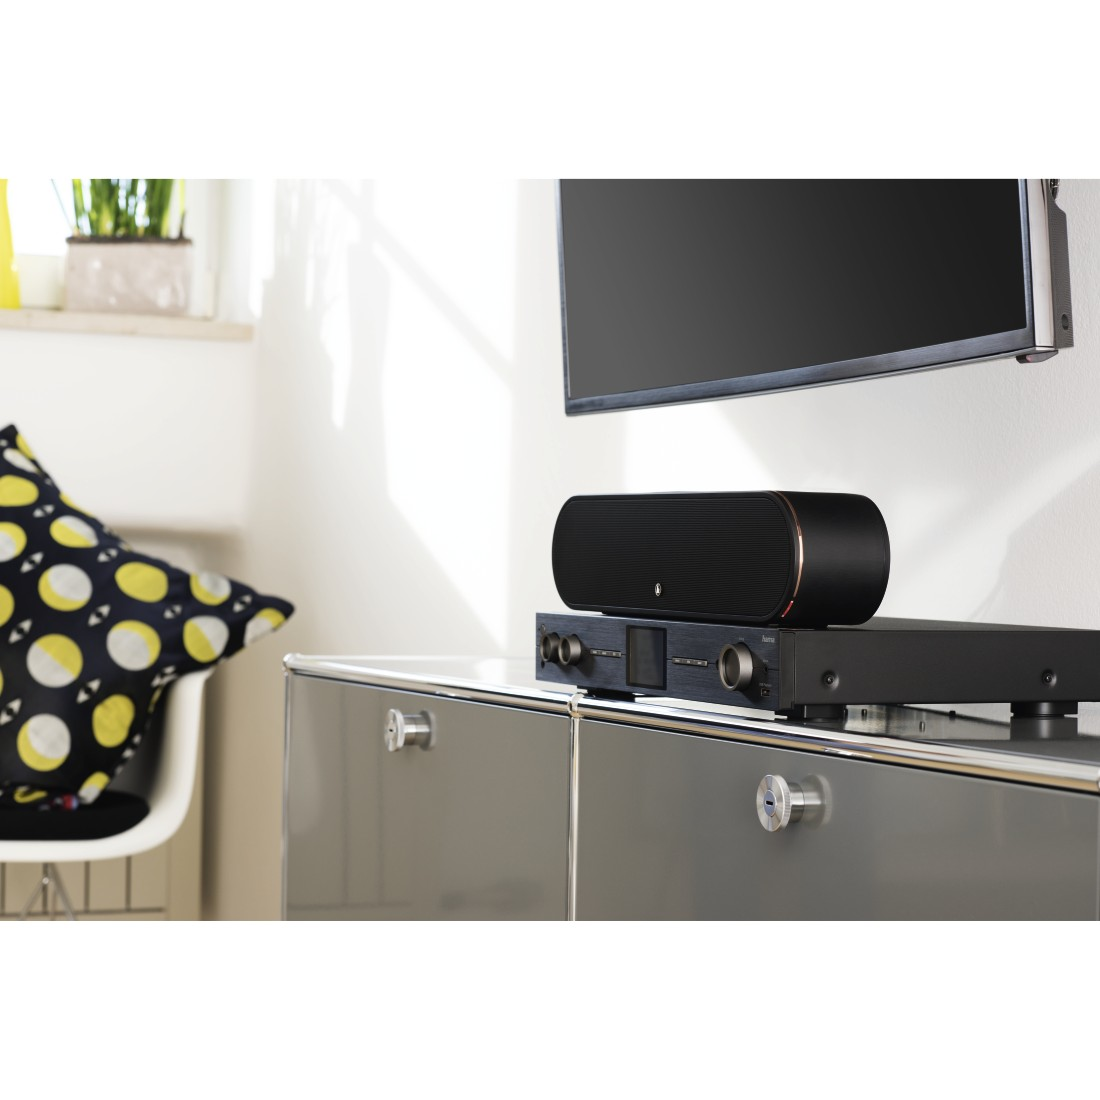 "prx Druckfähiges Pressebild - Hama, Smart-Slim-Soundbar 2.1 ""SIRIUM3800ABT"" Wireless Subwoofer/Alexa/Bluetooth®"